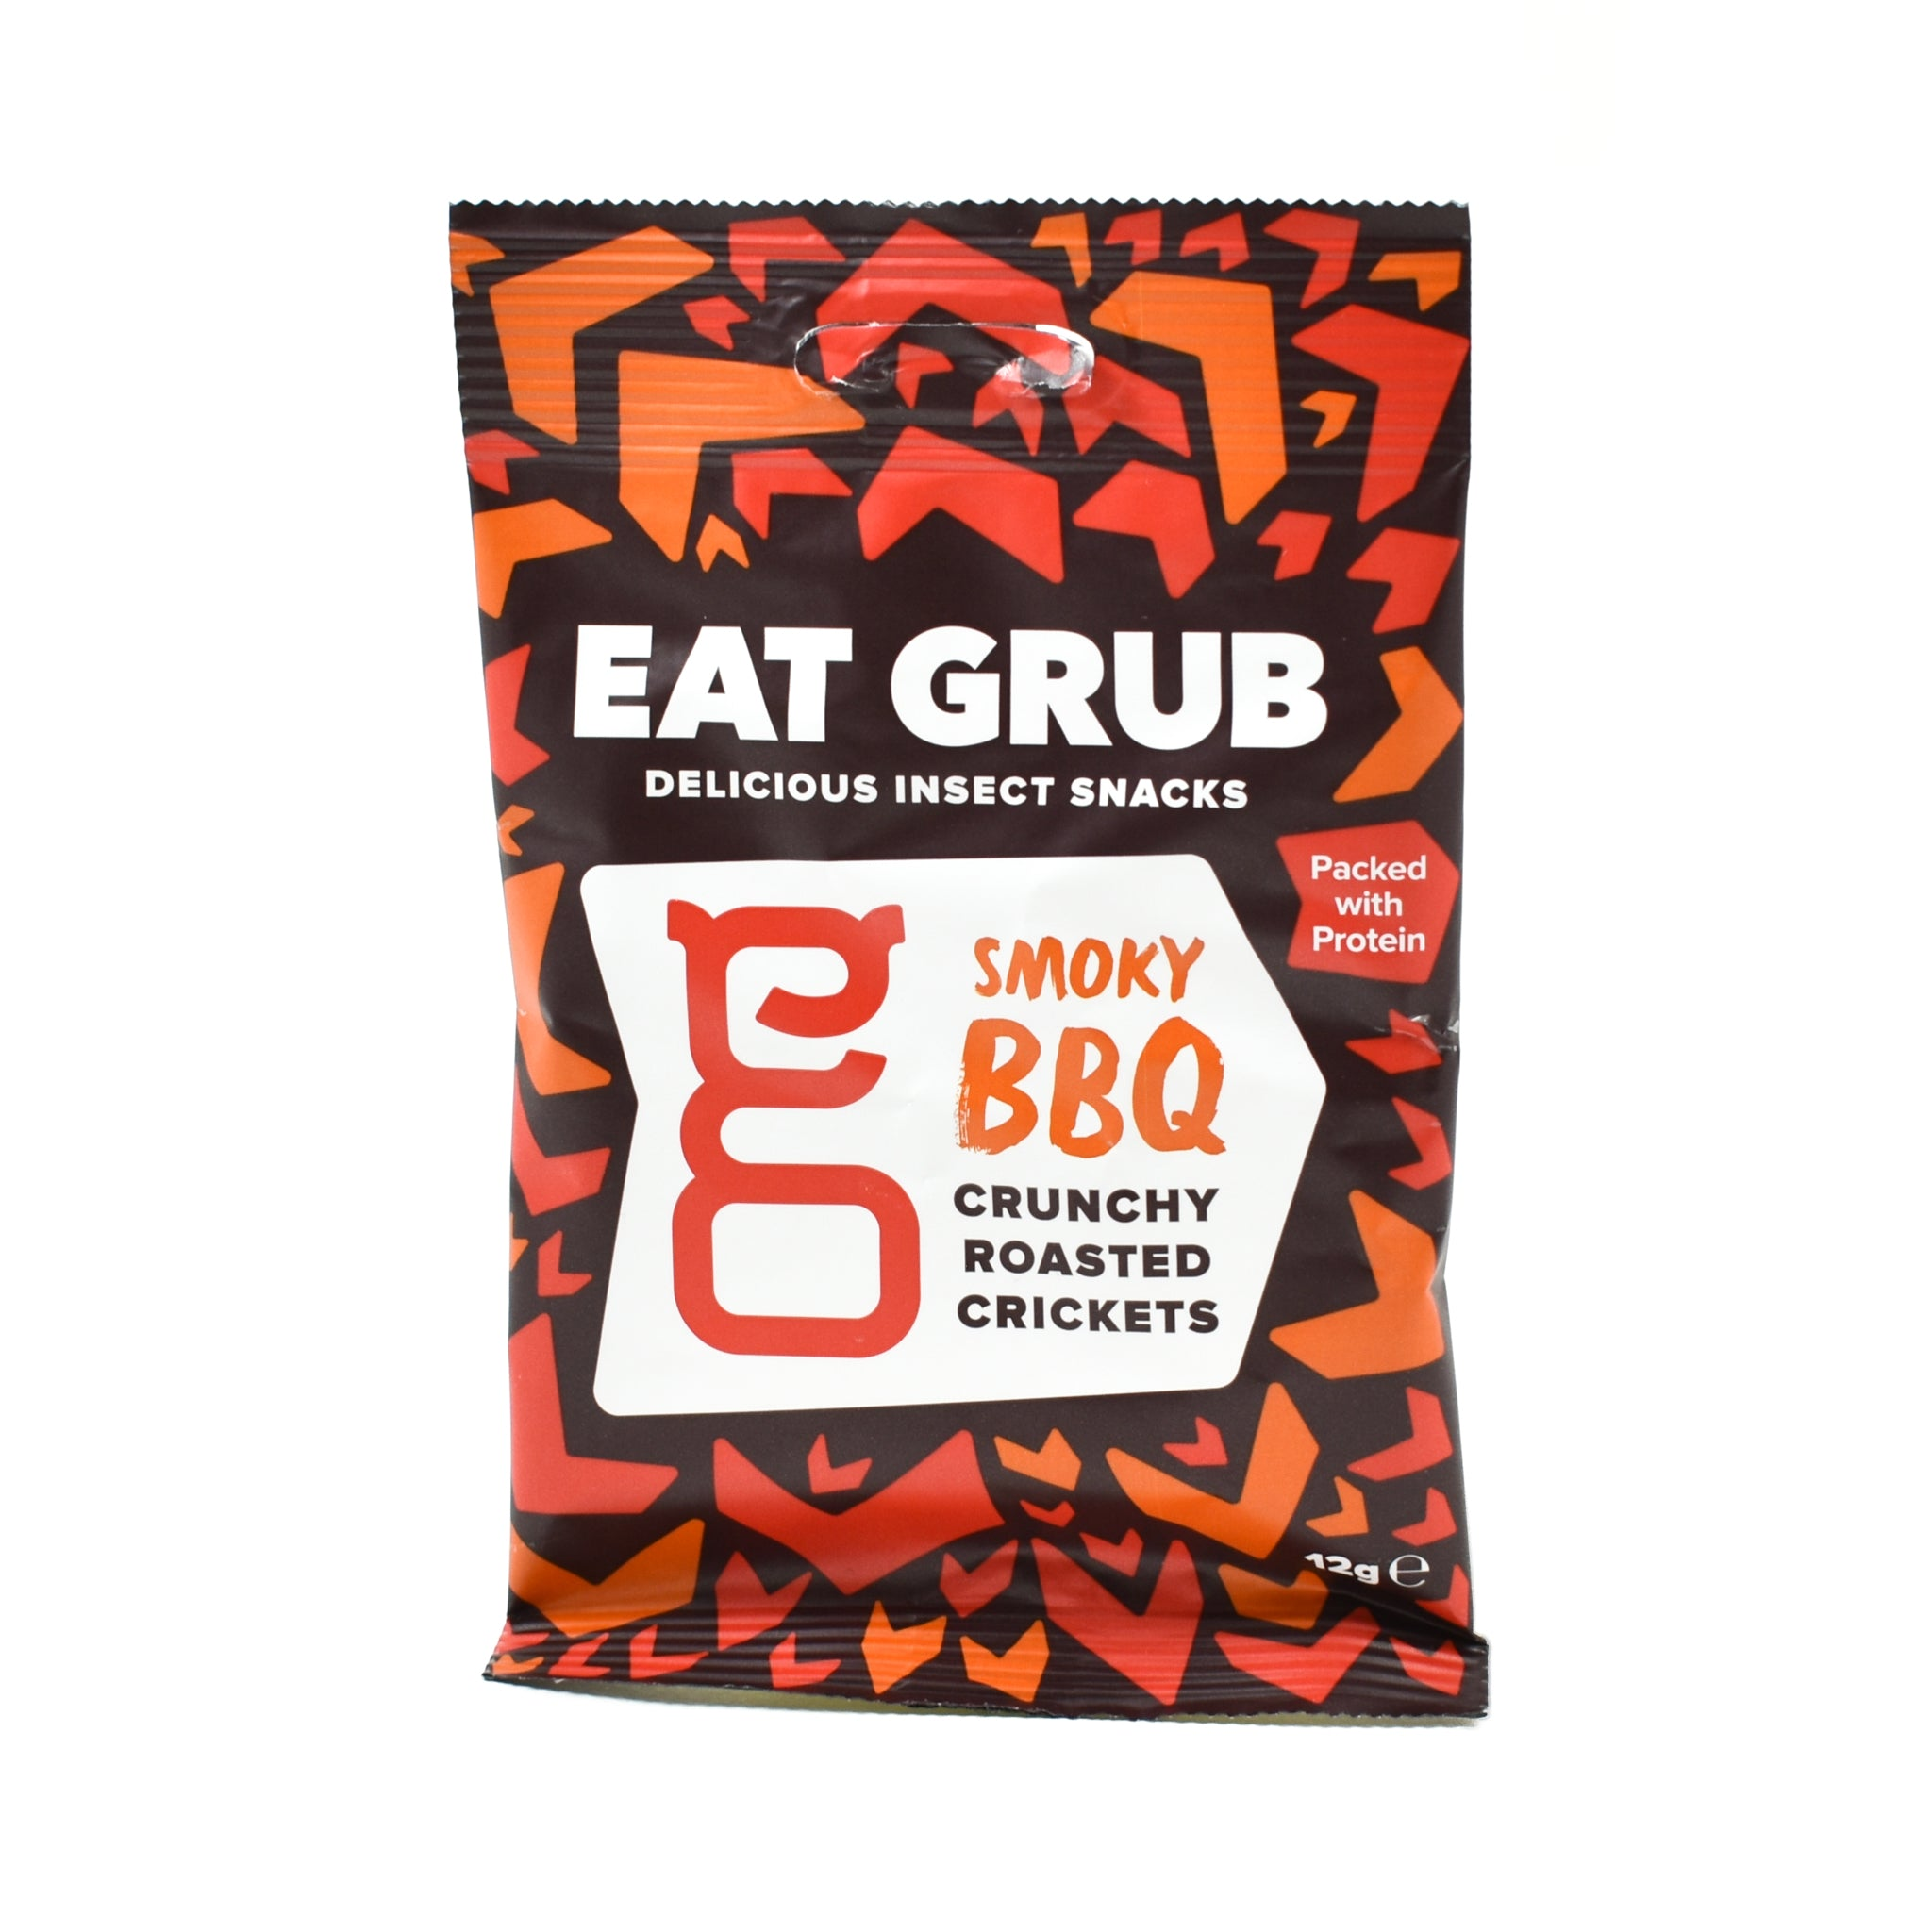 Eat Grub Smoky BBQ Crunchy Roasted Crickets 12g Ingredients Savoury Snacks & Crackers